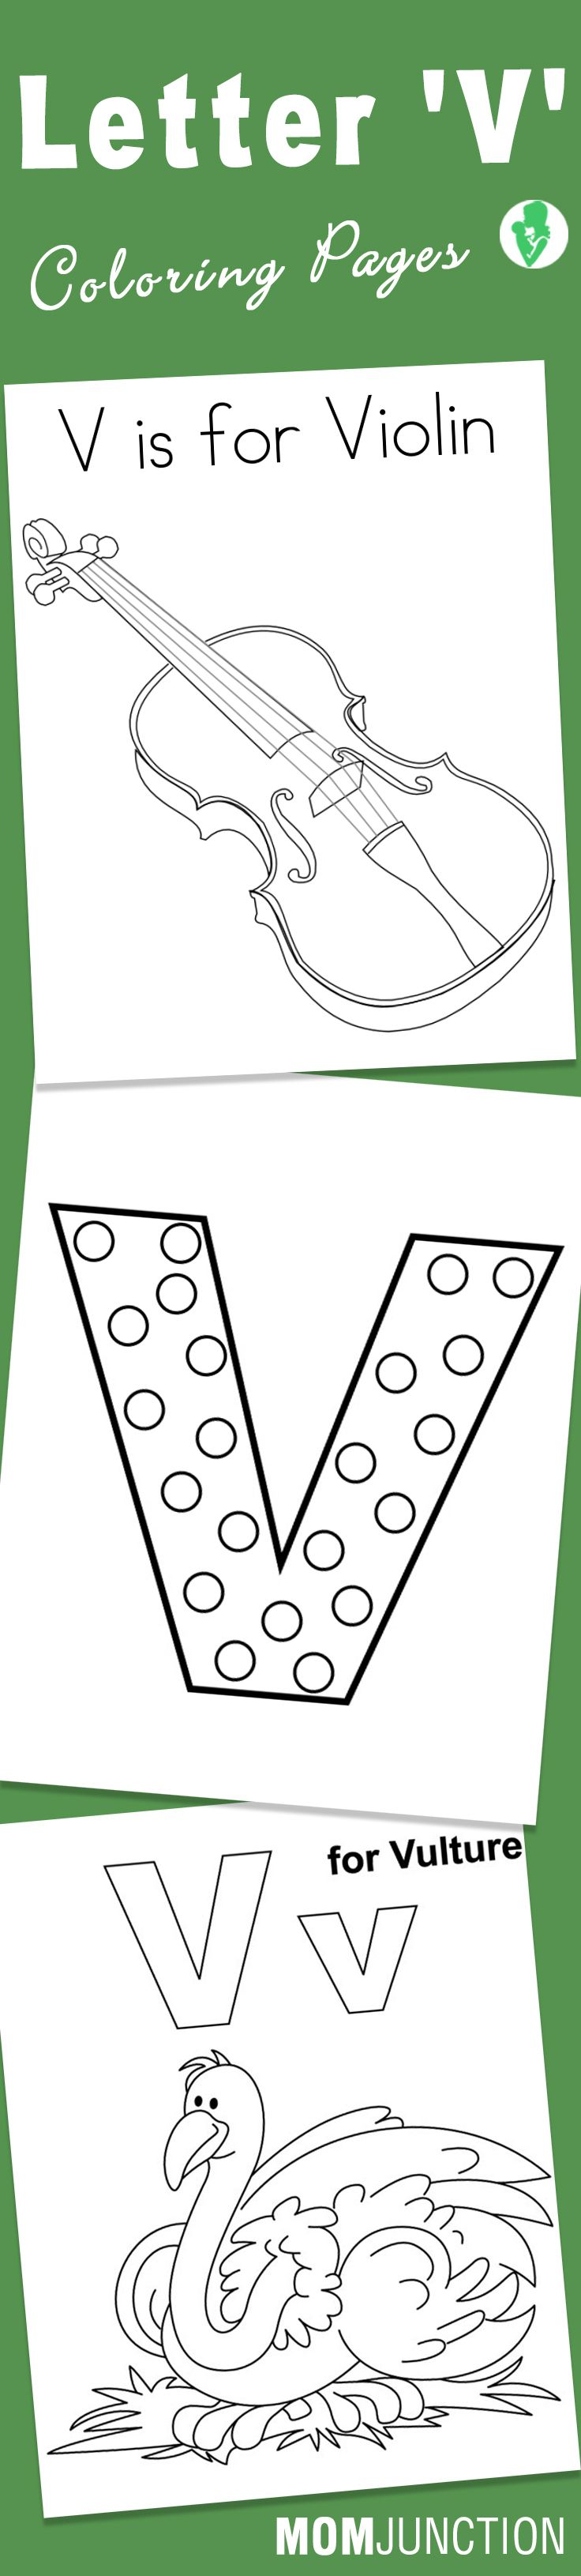 Colors for learning free printable learning colors coloring pages are - Top 10 Free Printable Letter V Coloring Pages Online